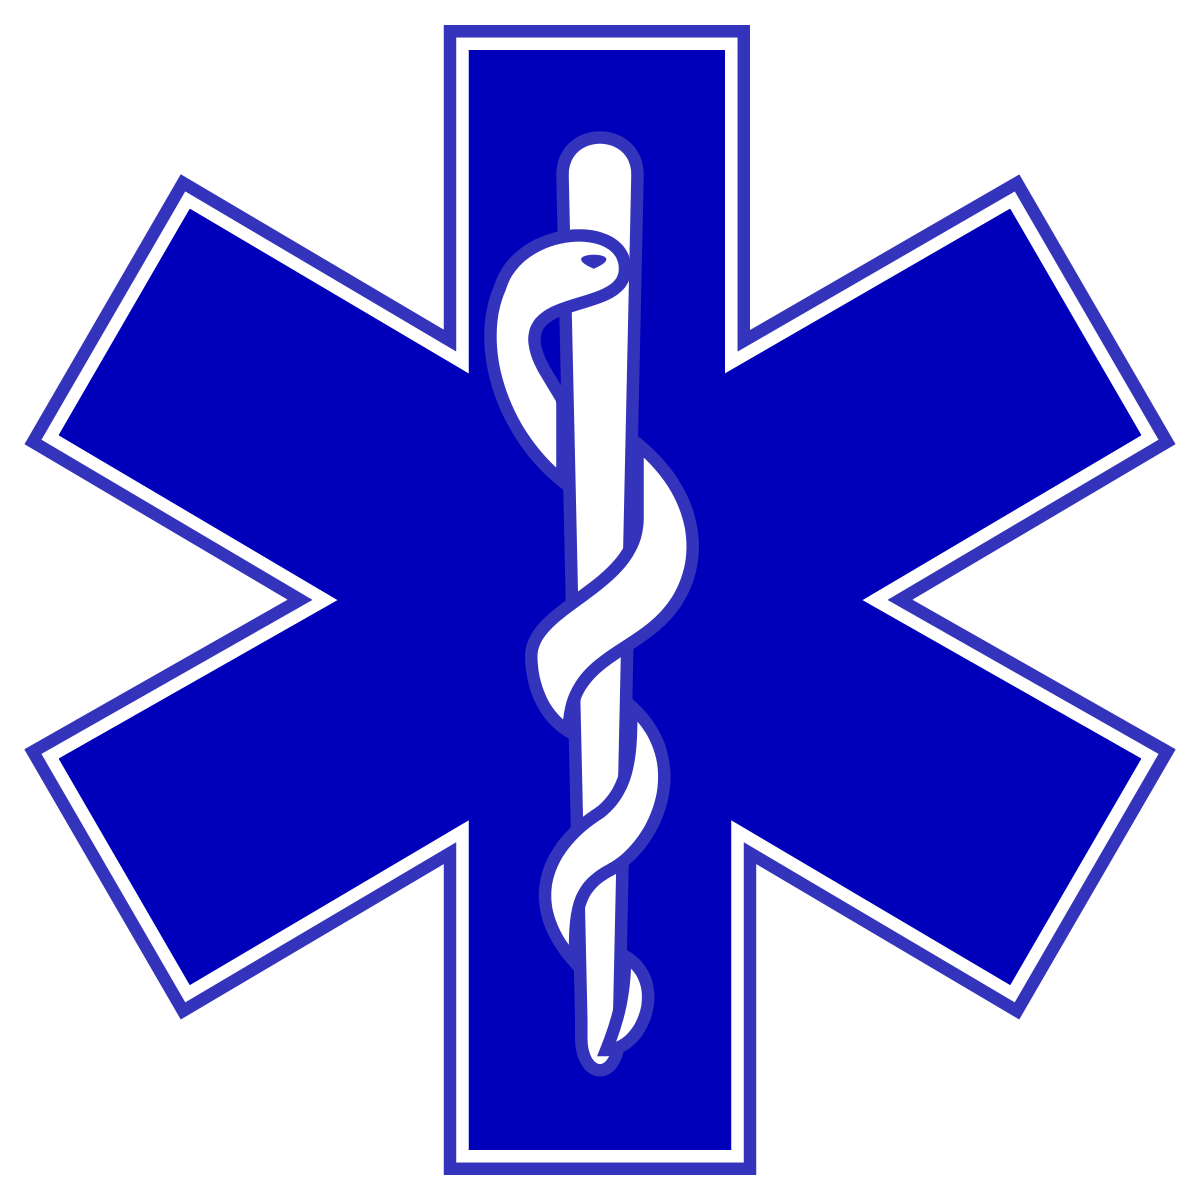 Star of life black and white clipart svg black and white library Emergency medical technician - Wikipedia svg black and white library